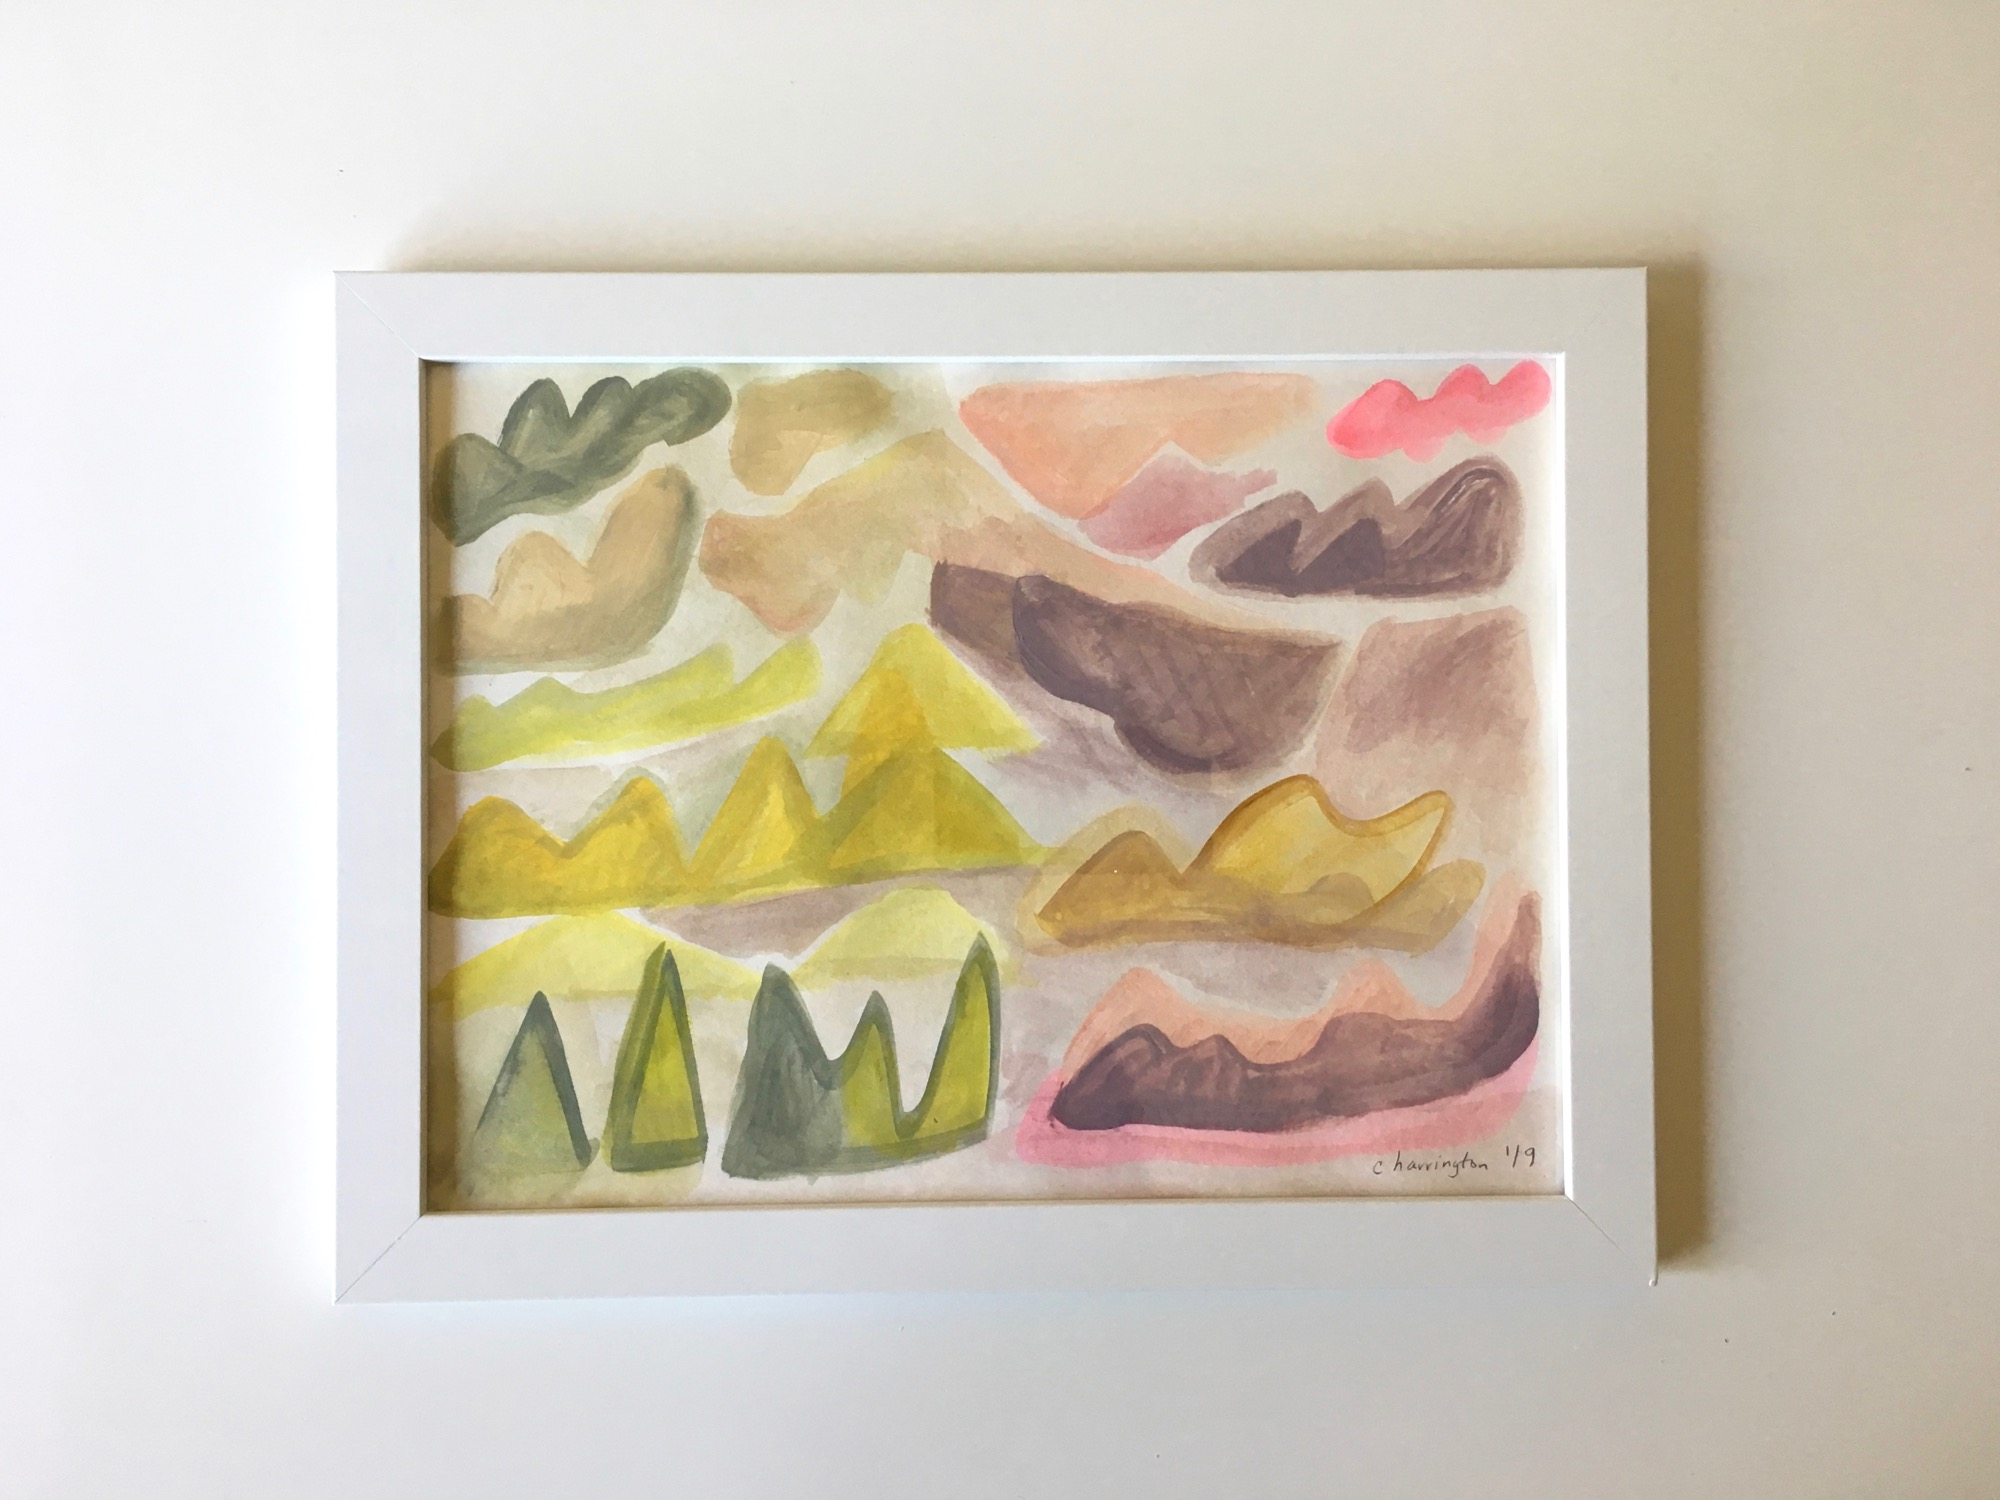 The Pastel Hills, Watercolor and Acrylic on Watercolor Paper, 9 x 12 inches, 2019